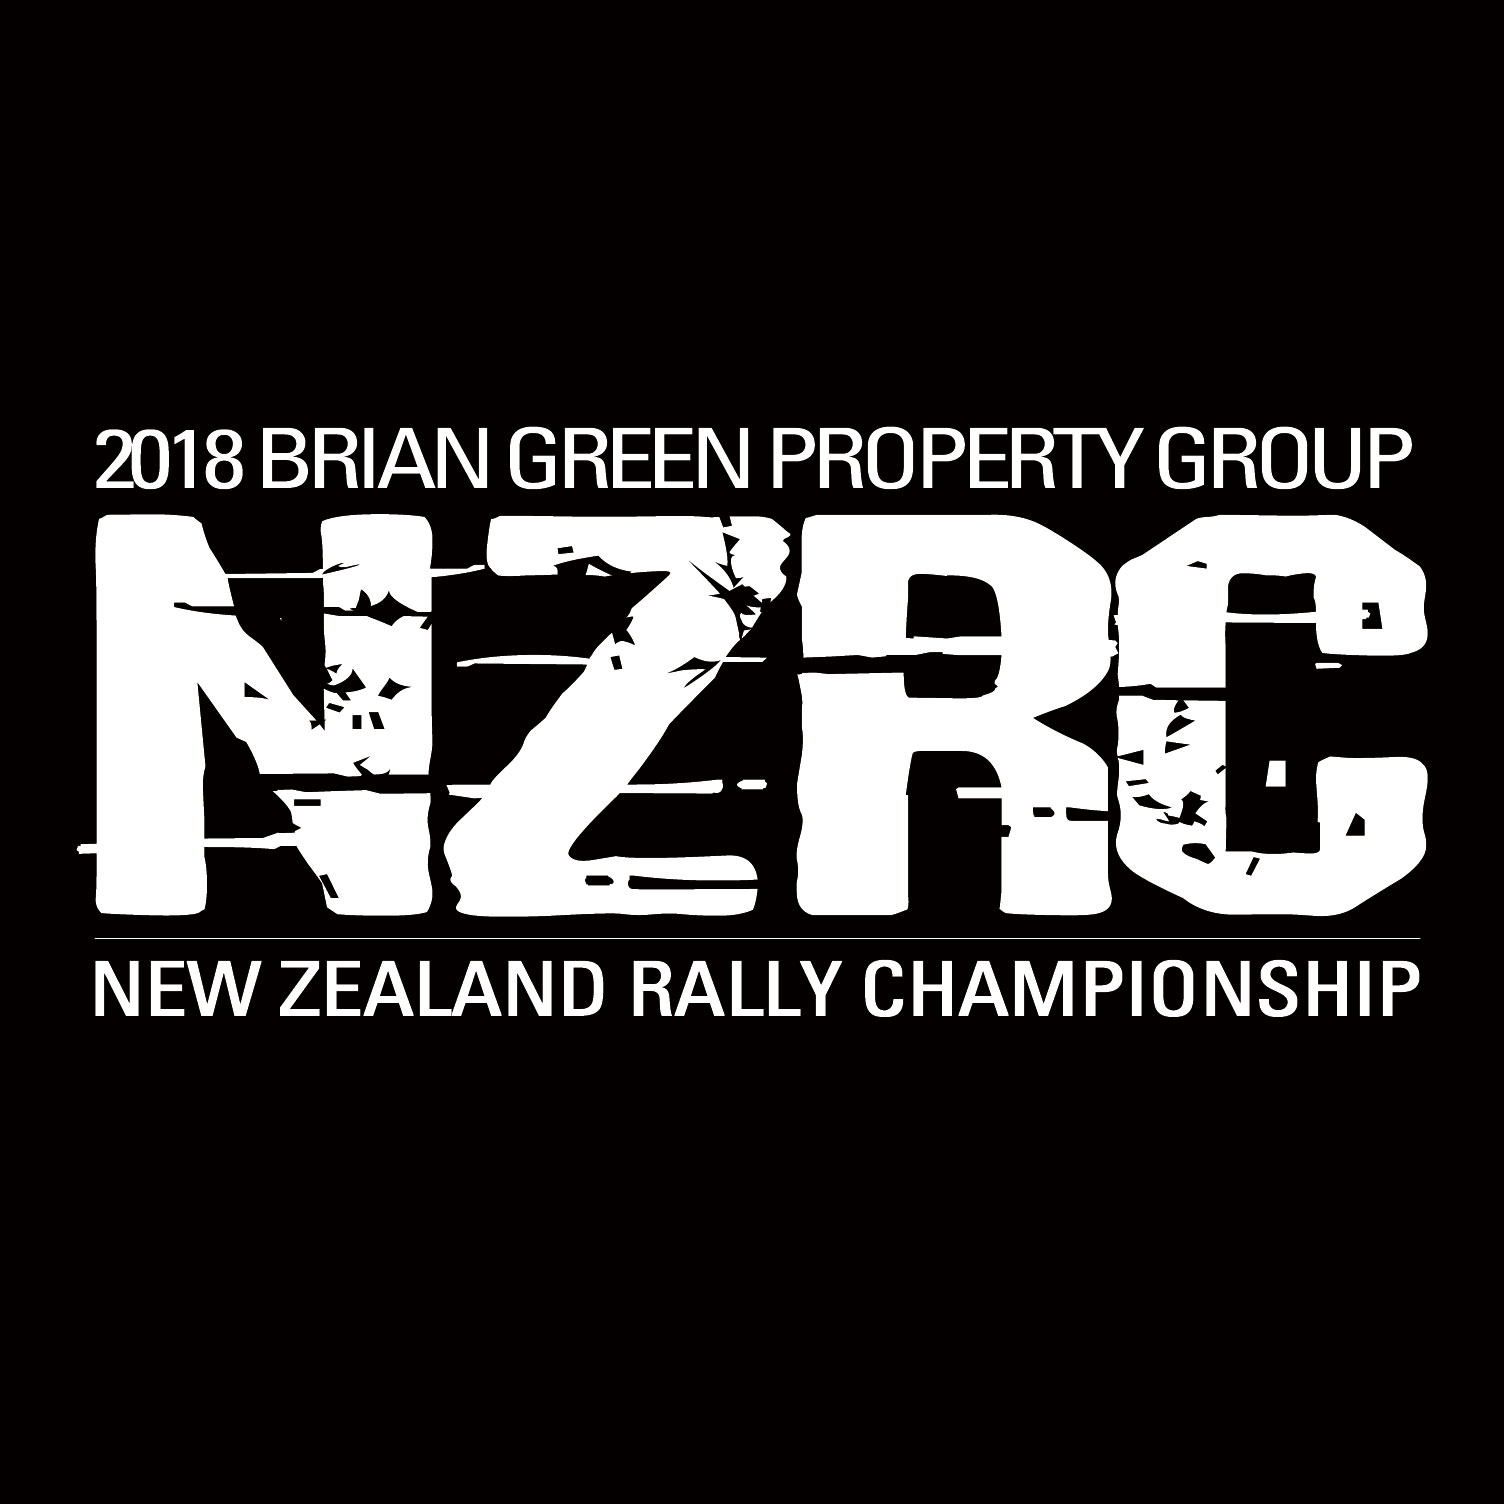 Reeves takes victory at NZRC finale | :: Brian Green Property Group New Zealand Rally Championship ::